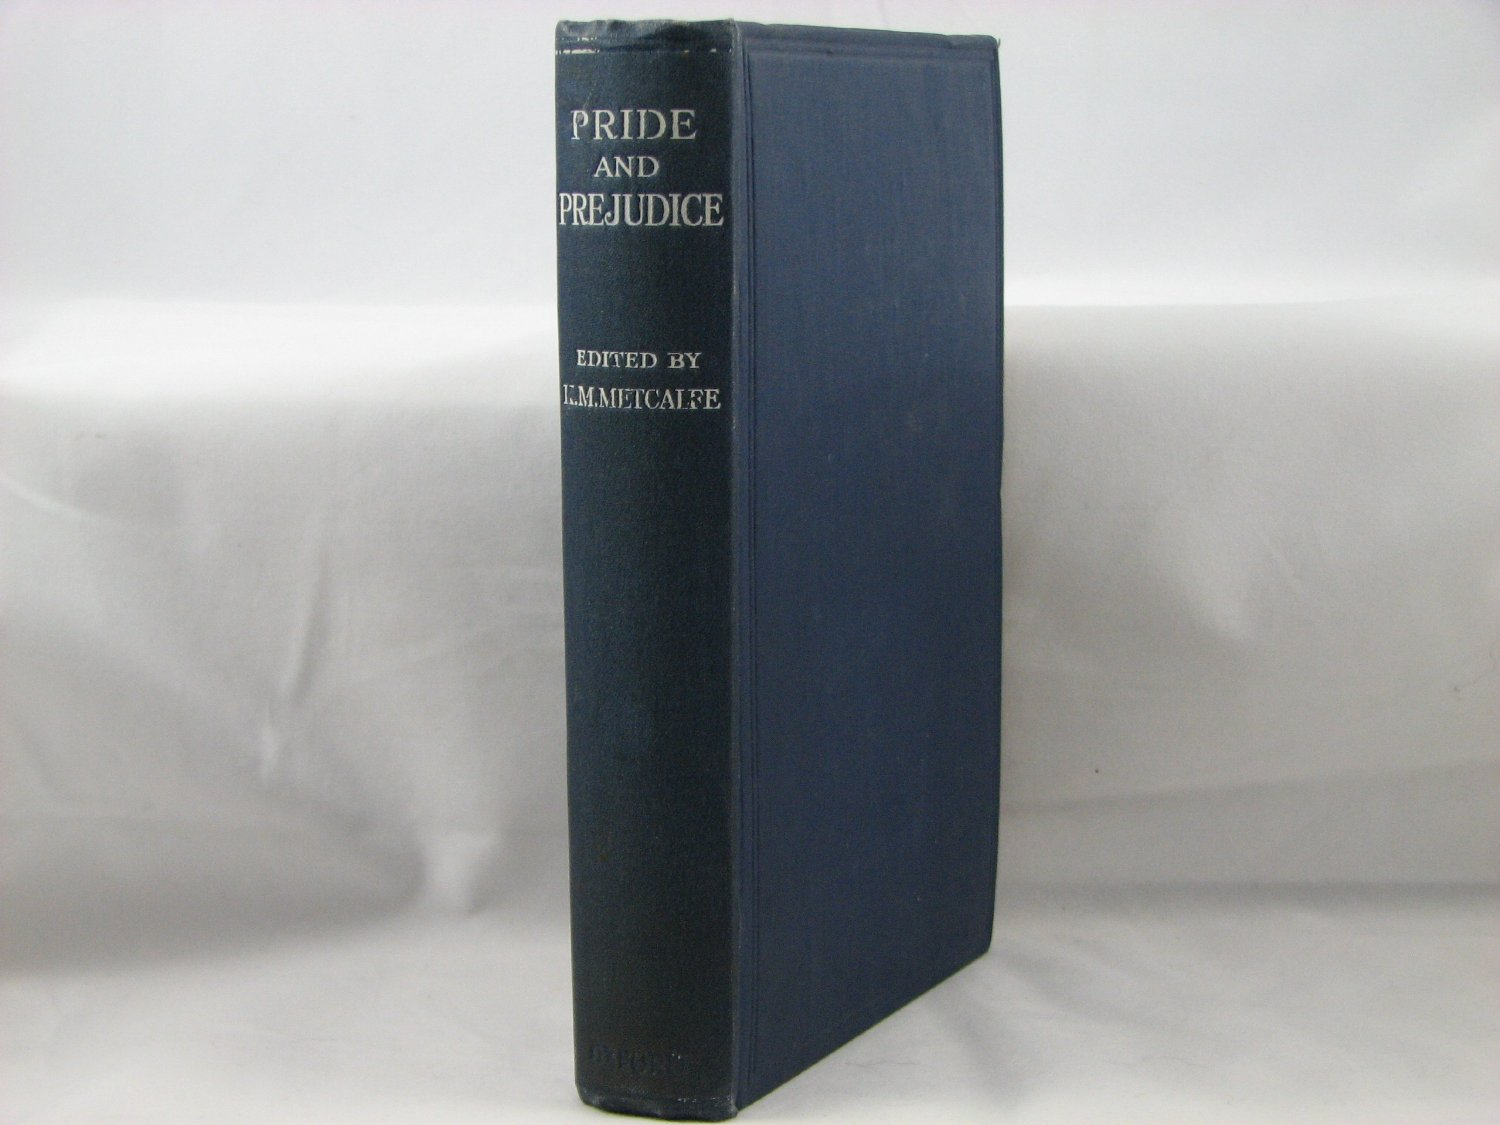 austen literary history criticism jane austen in vermont pride and prejudice ed k m metcalfe oxford 1912